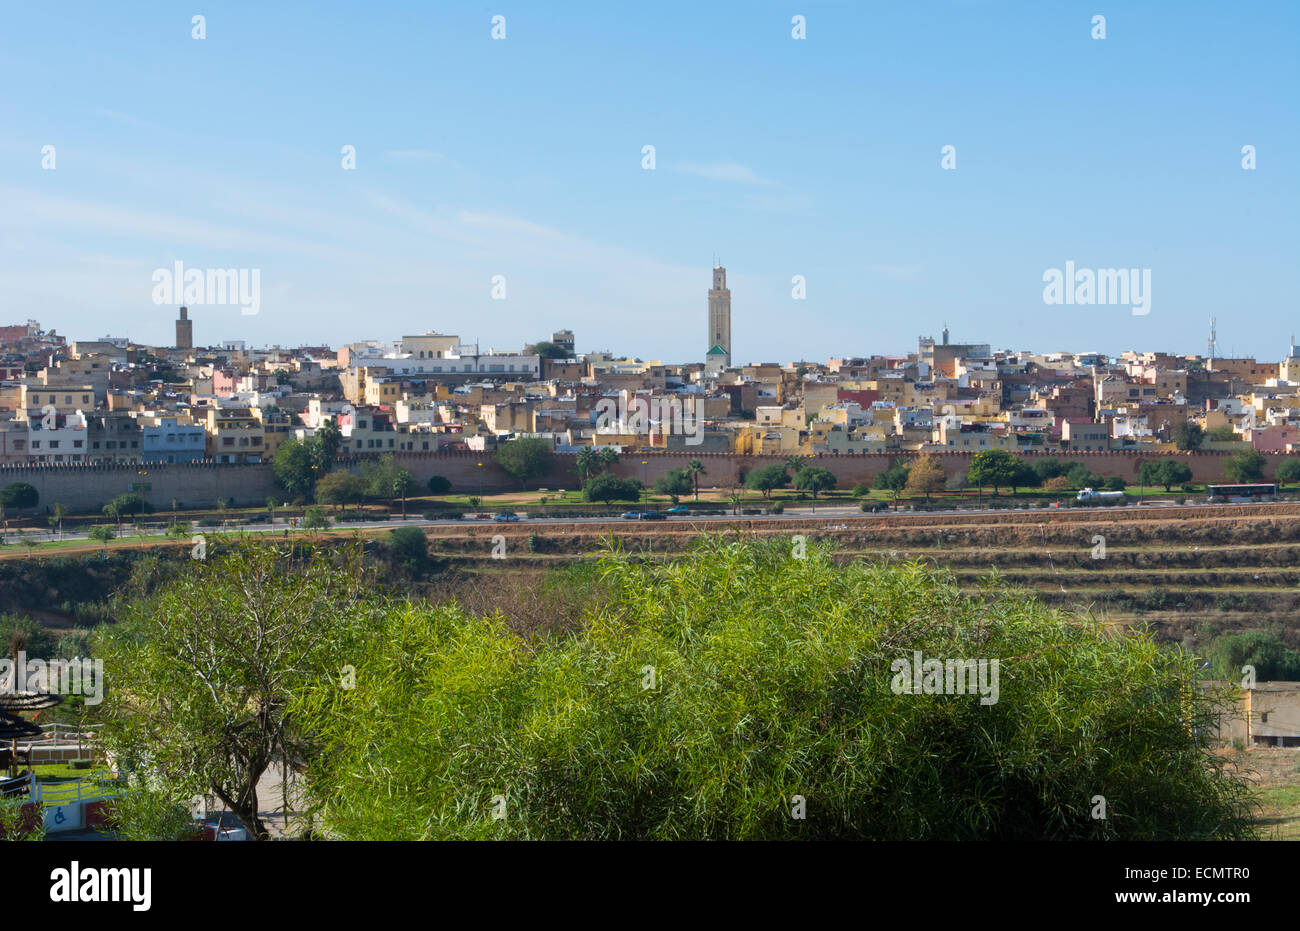 Meknes Morocco city scape panoramic of old city medina with walls of downtown - Stock Image